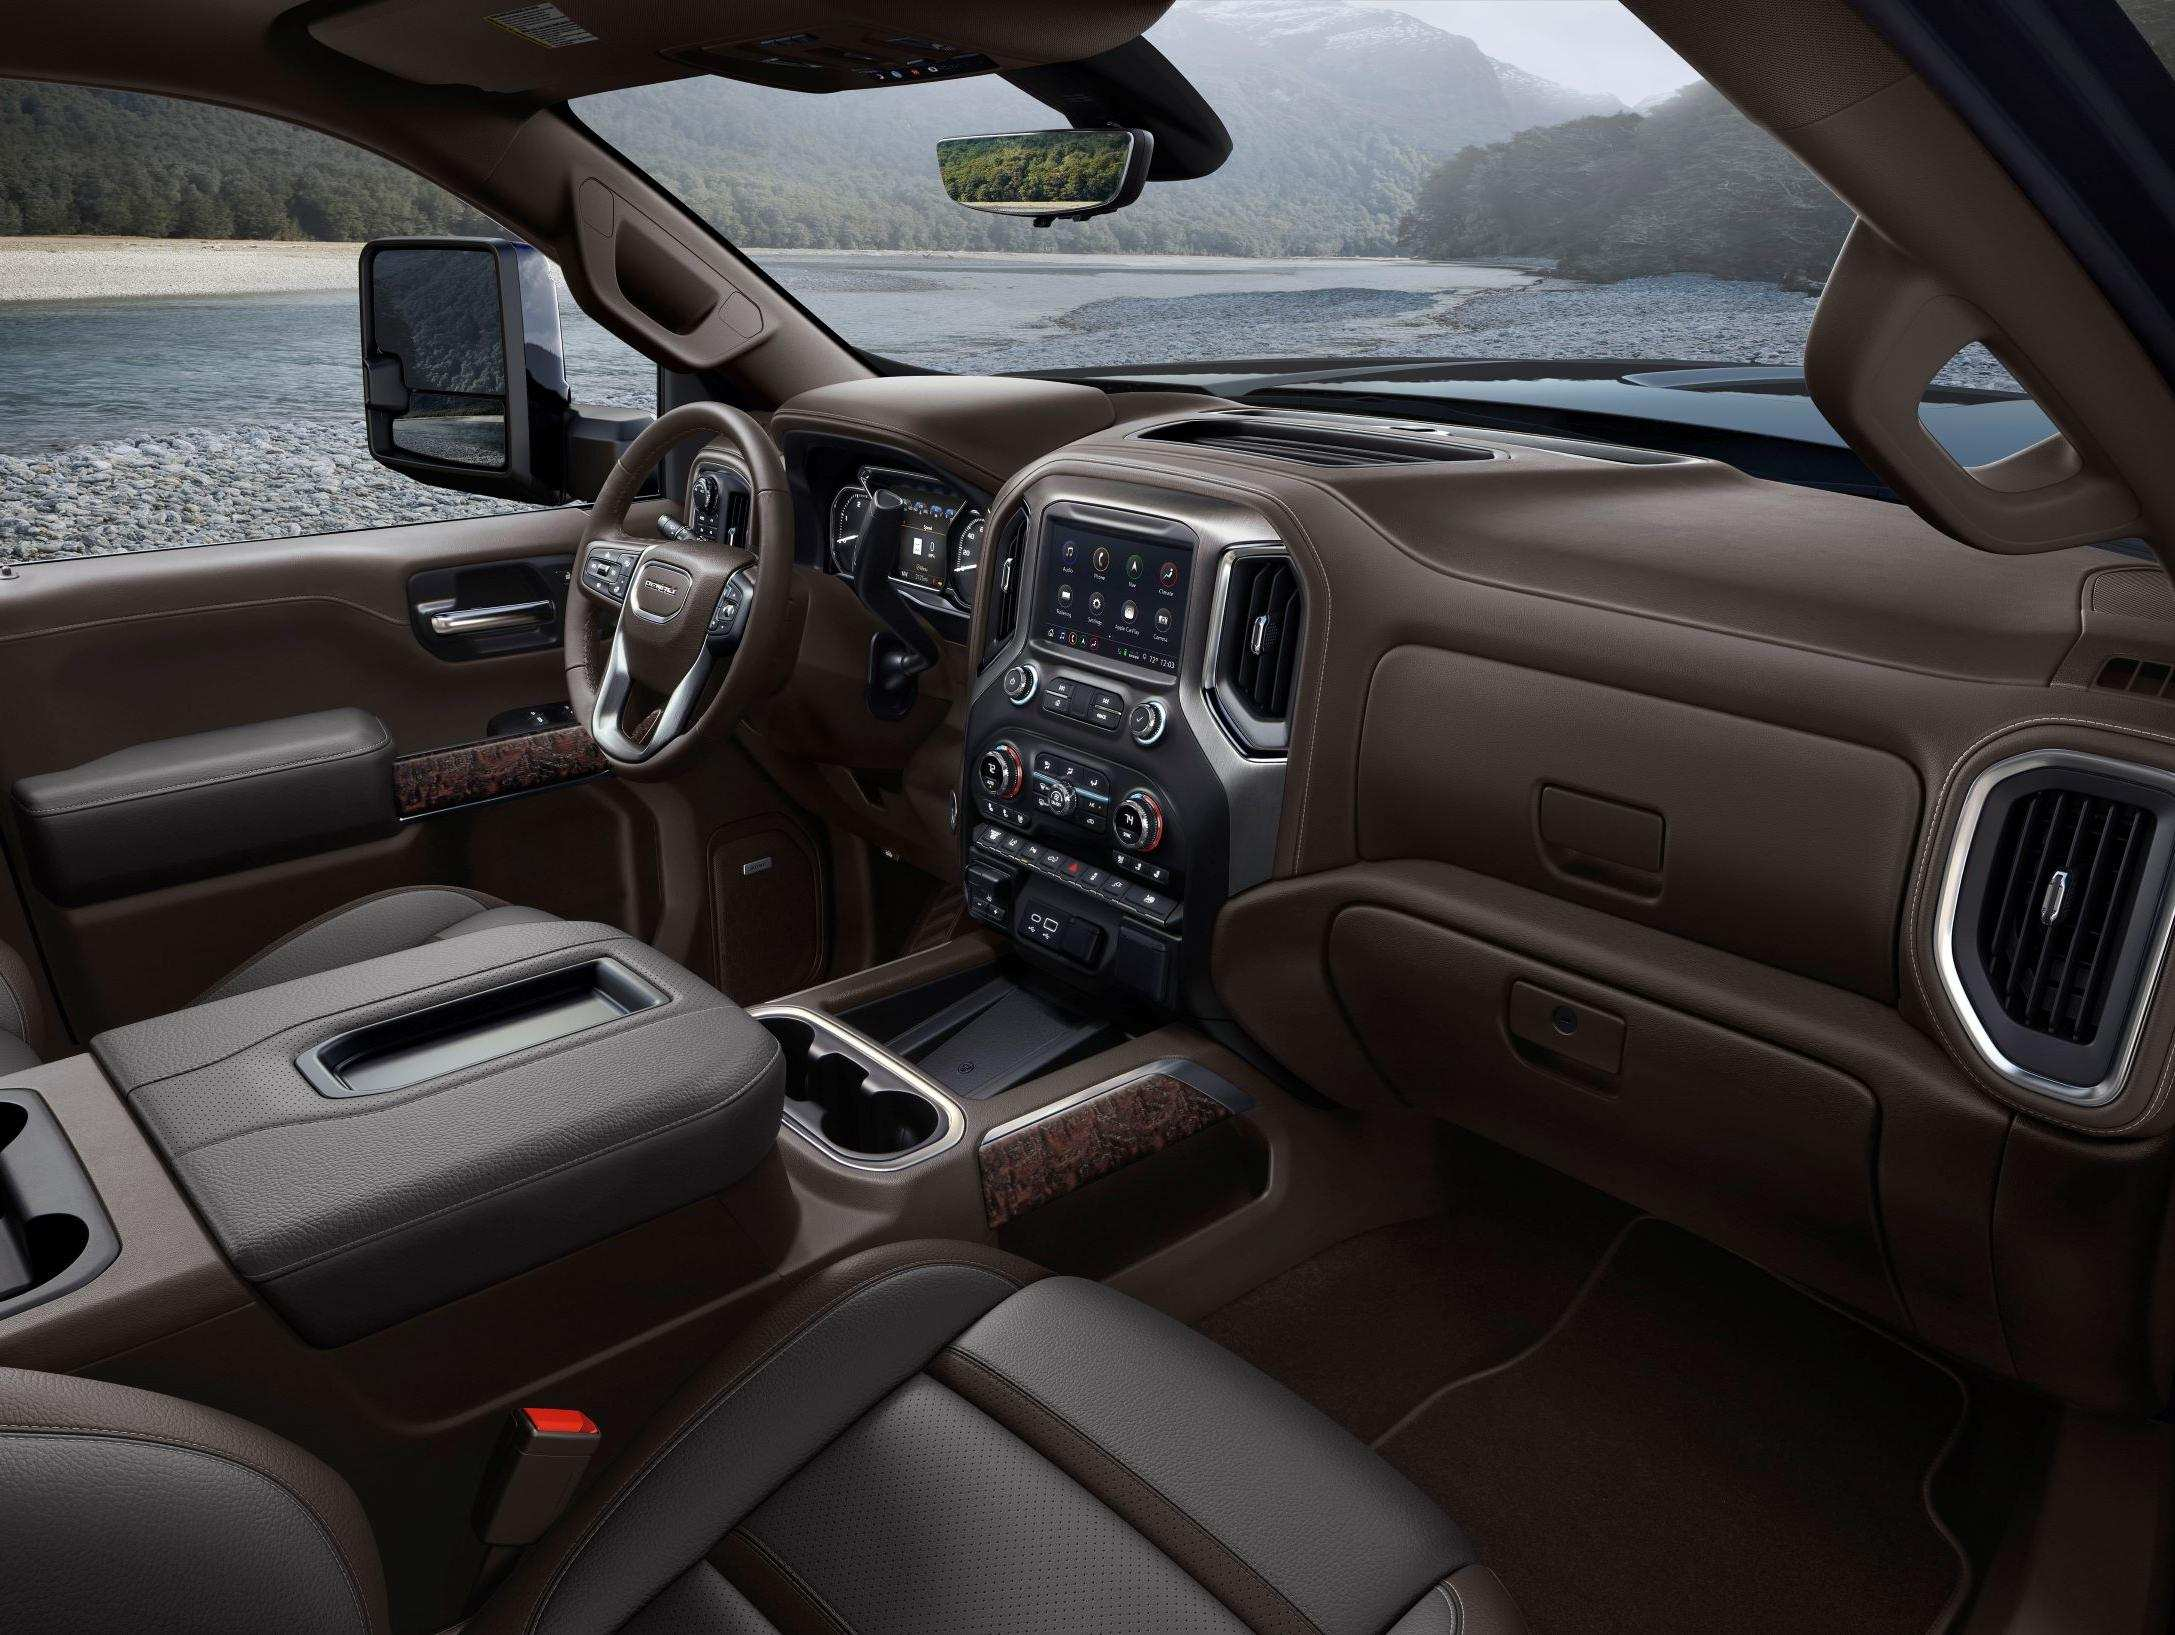 59 Great 2020 Gmc Hd Interior Model with 2020 Gmc Hd Interior